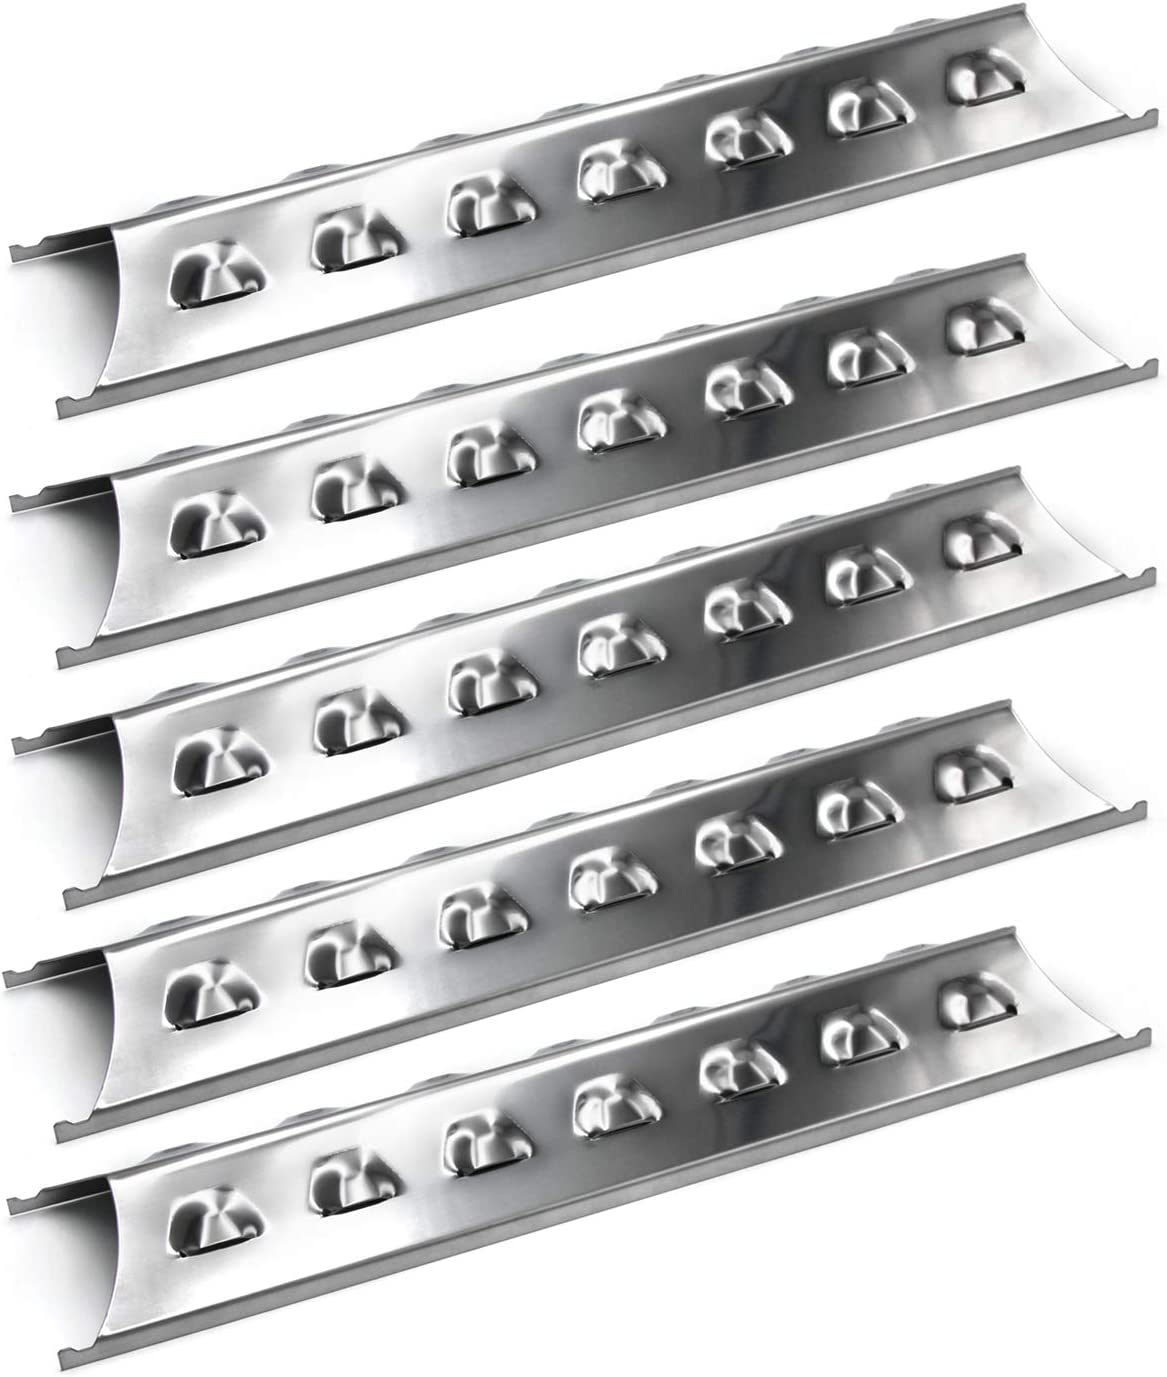 Hongso SPE181 (5-Pack) Stainless Steel Heat Plate, Heat Shield, Heat Tent, Burner Cover, Vaporizor Bar, and Flavorizer Bar Replacement for Select Gas Grill Models by Brinkmann, Charmglow and Others